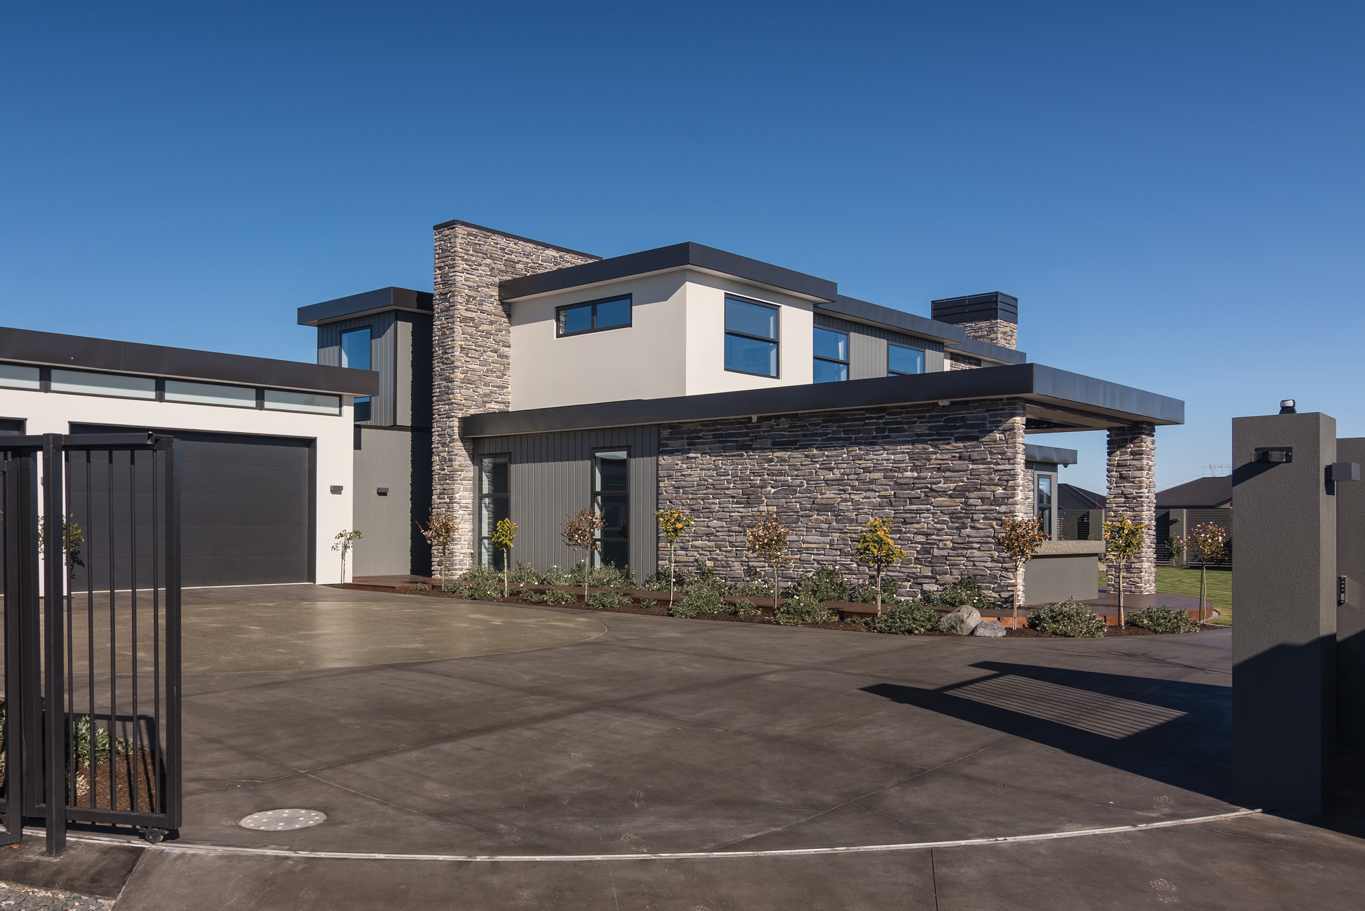 EXTERIOR:  The contrasting textures and colours of the exterior were achieved using Rockcote Integra, Hard as Rocks schist stone veneer and James Hardie Linea Oblique cladding.